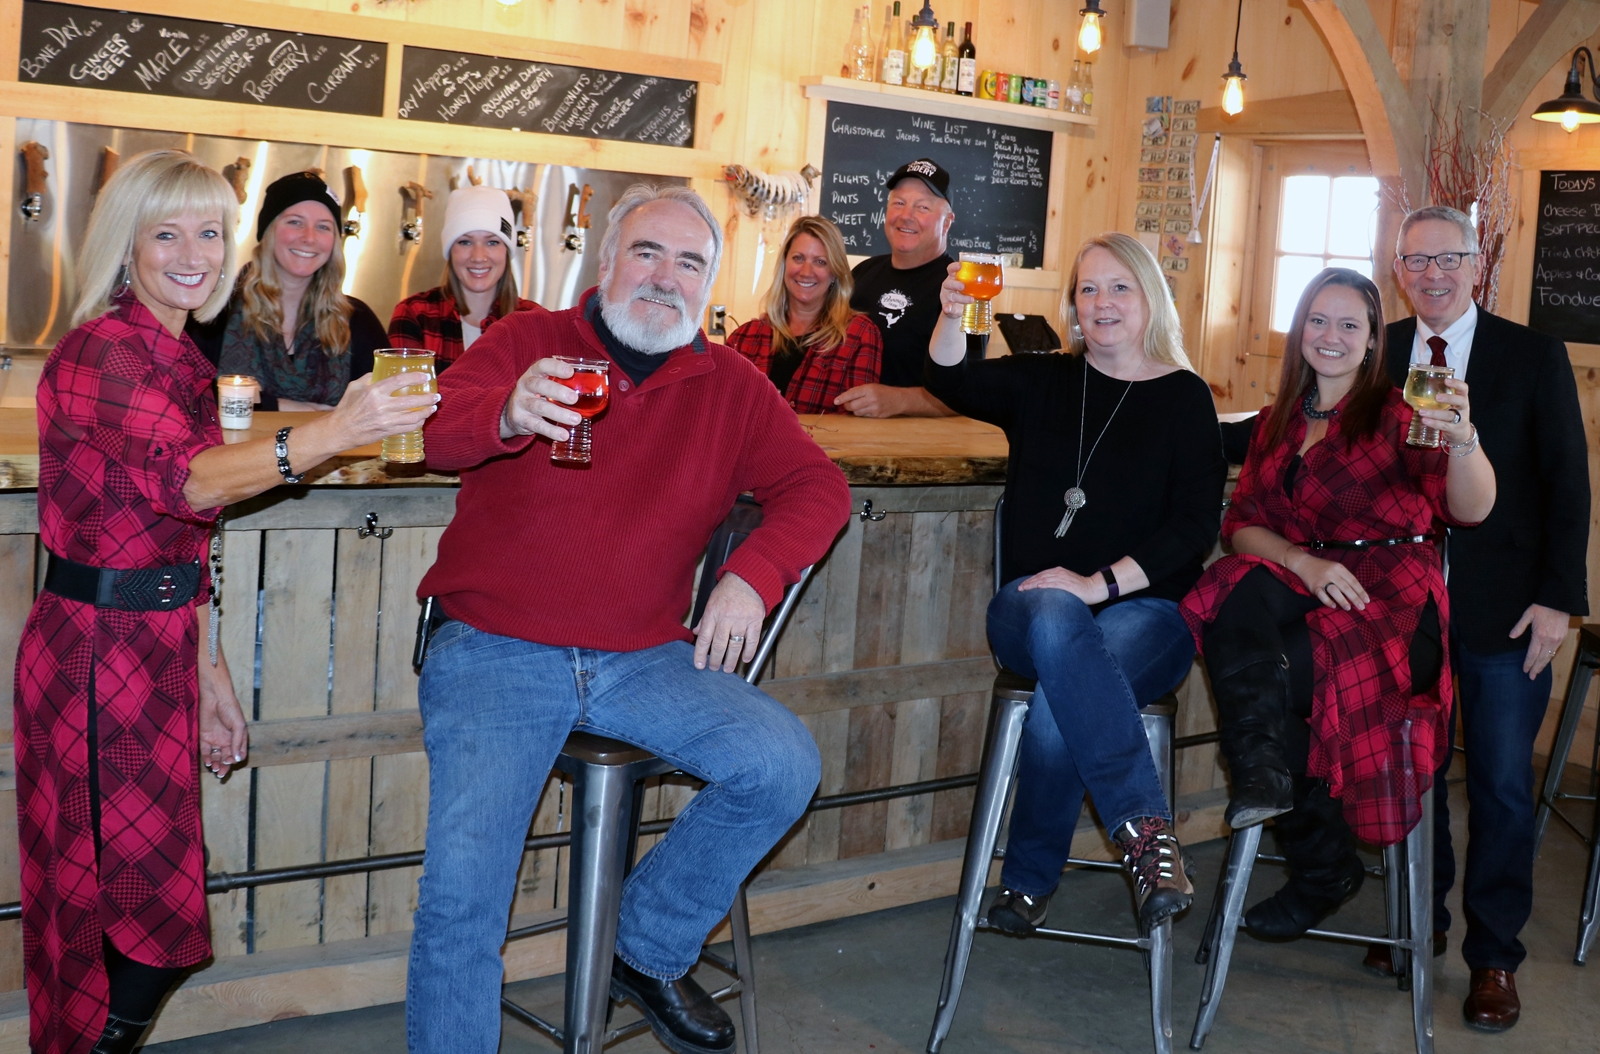 Warwick chamber to host holiday mixer at Pennings Farm ...